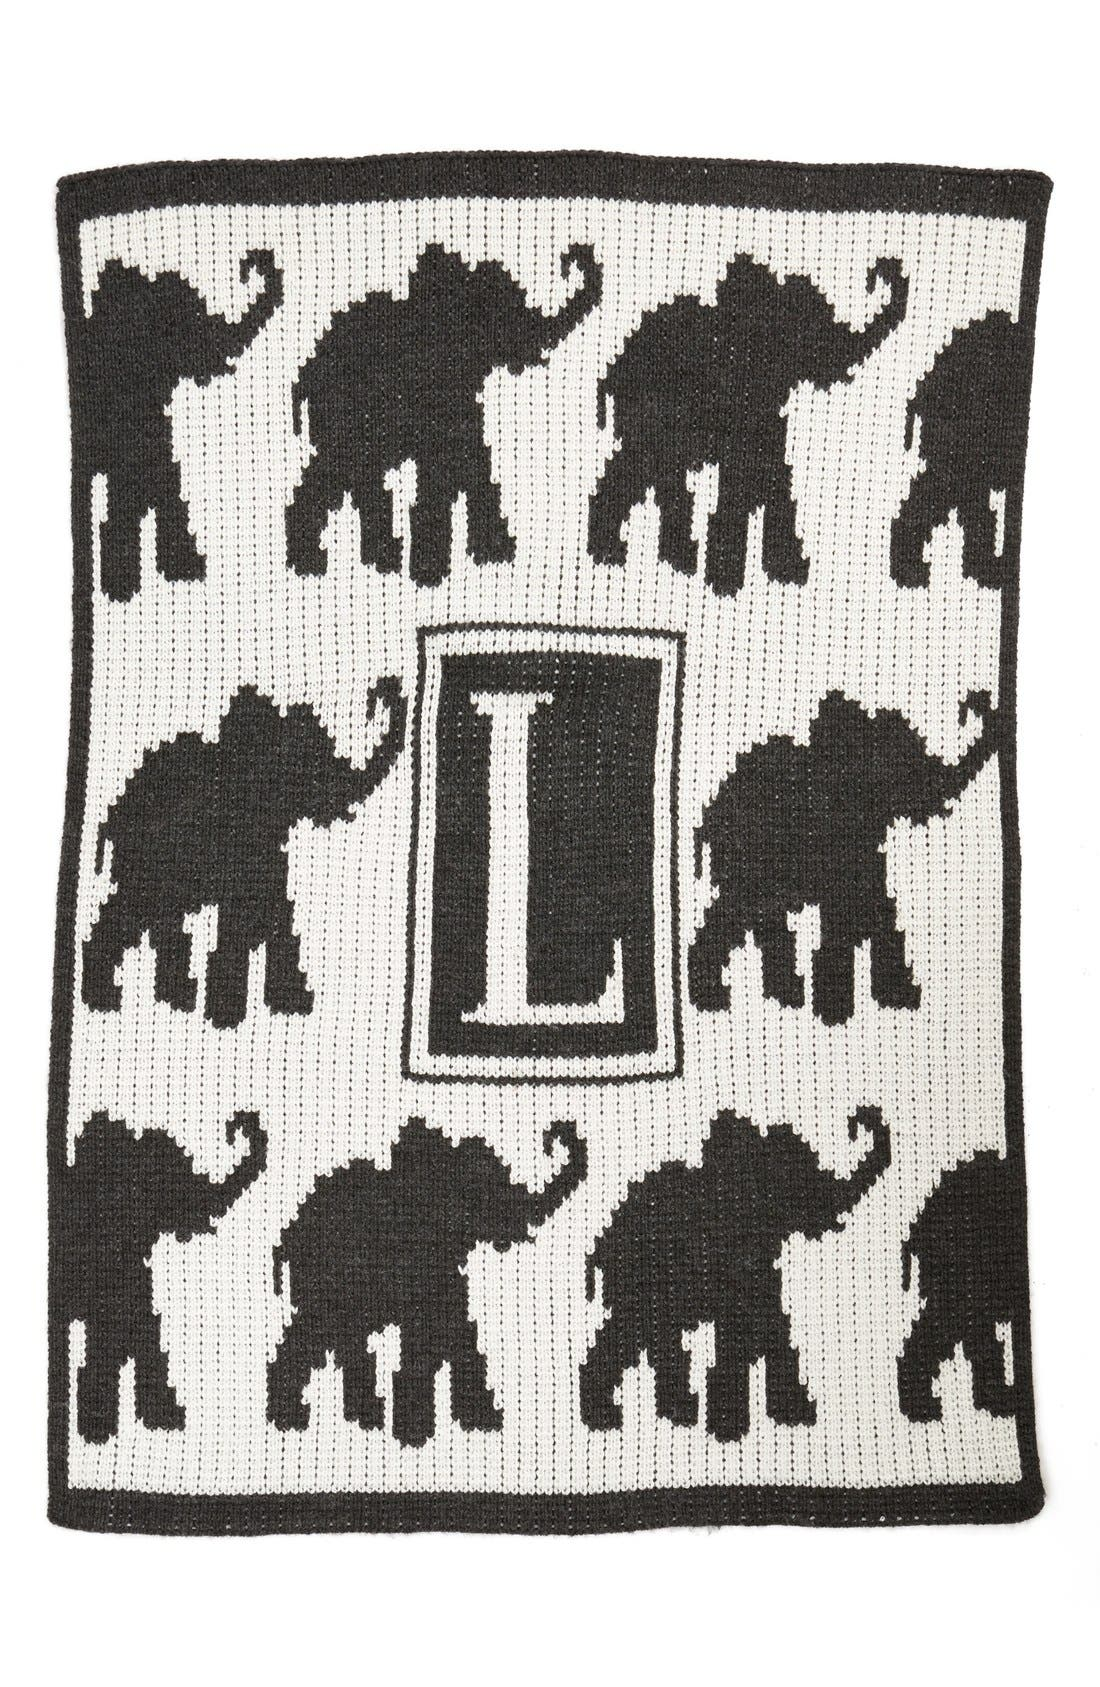 'Walking Elephants - Small' Personalized Blanket,                         Main,                         color, 020